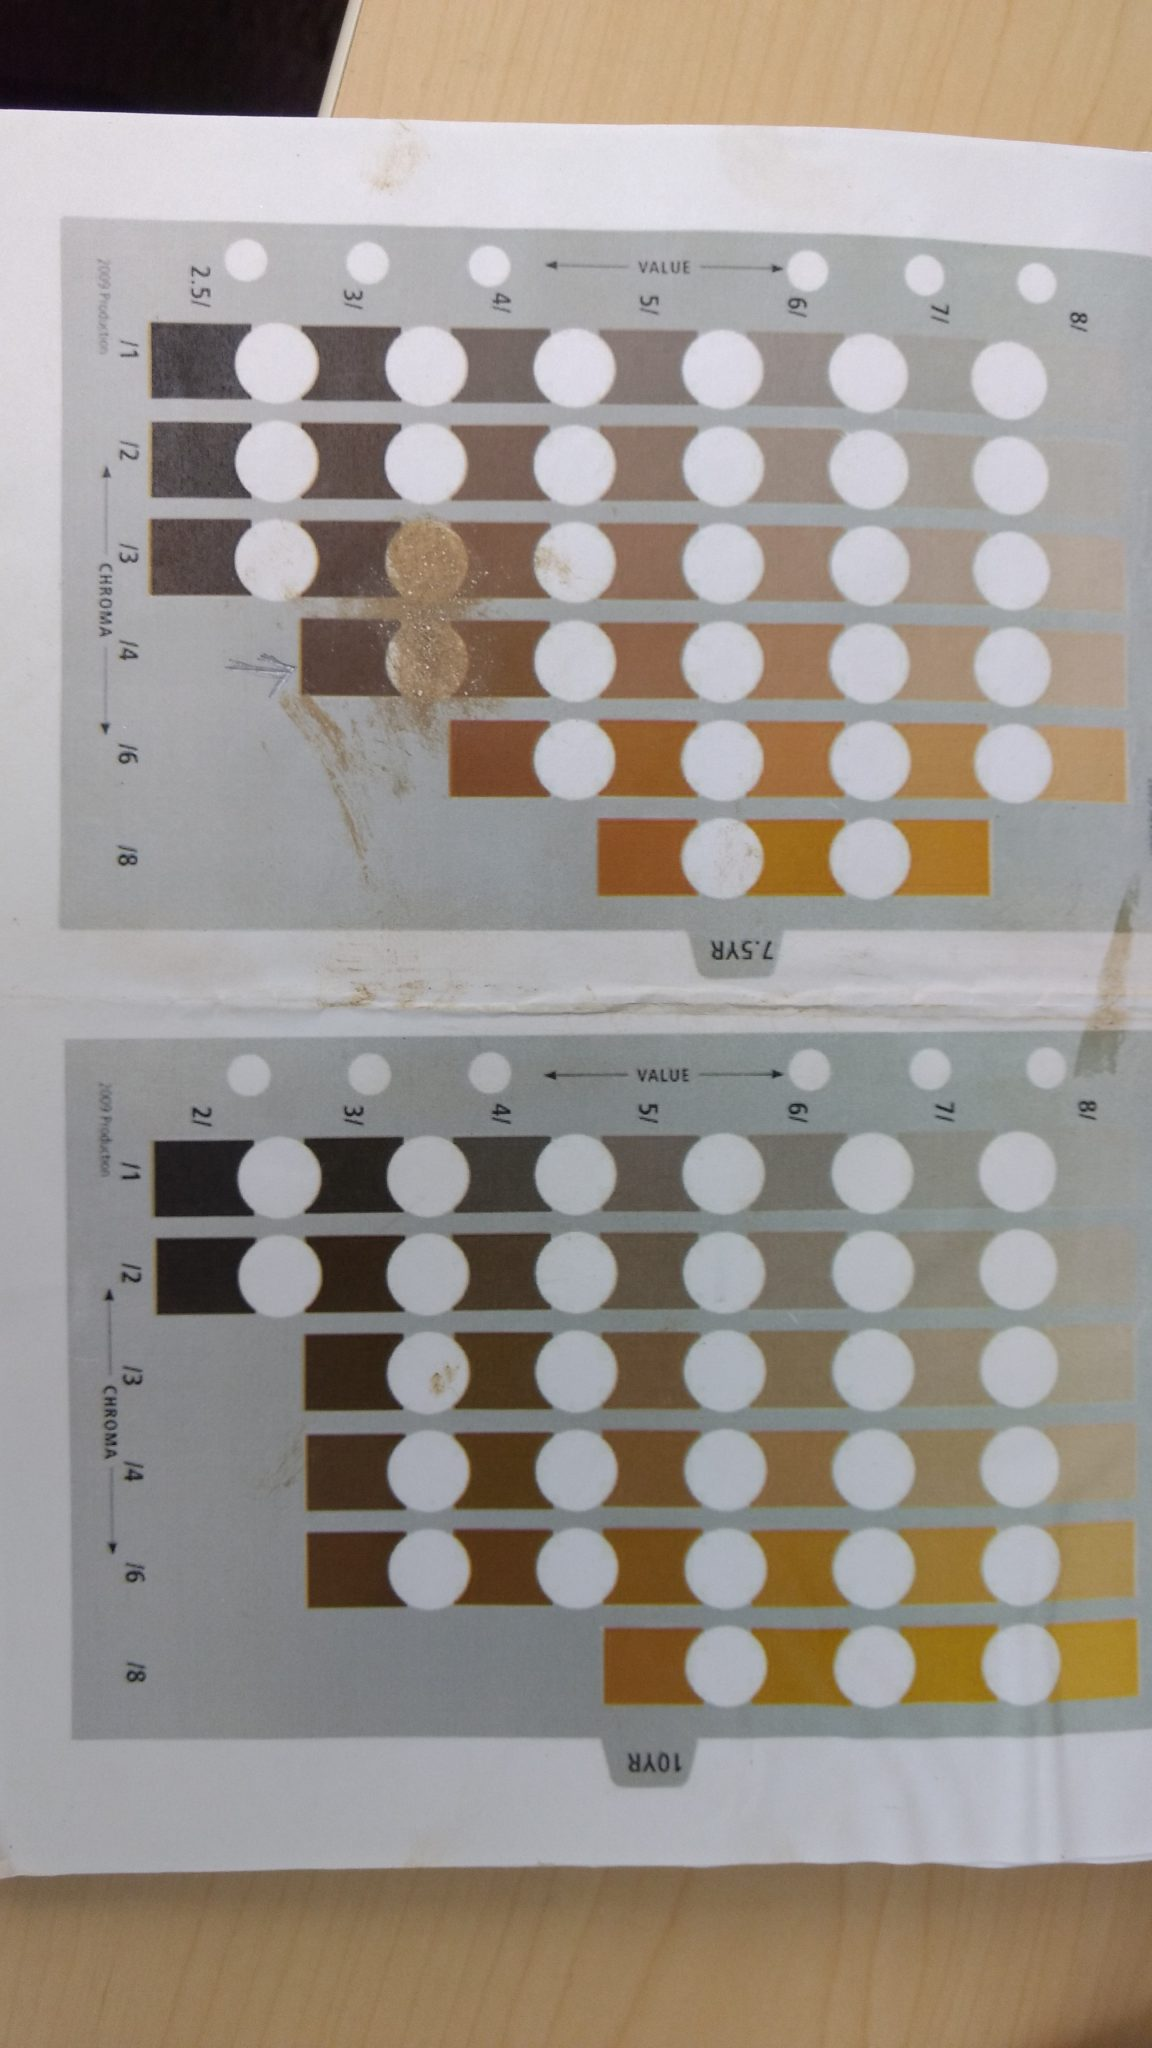 Color is described using the munsell color book munsell soil soil color chart soil color chart irvine nature center soil color chart munsell munsell soil nvjuhfo Gallery